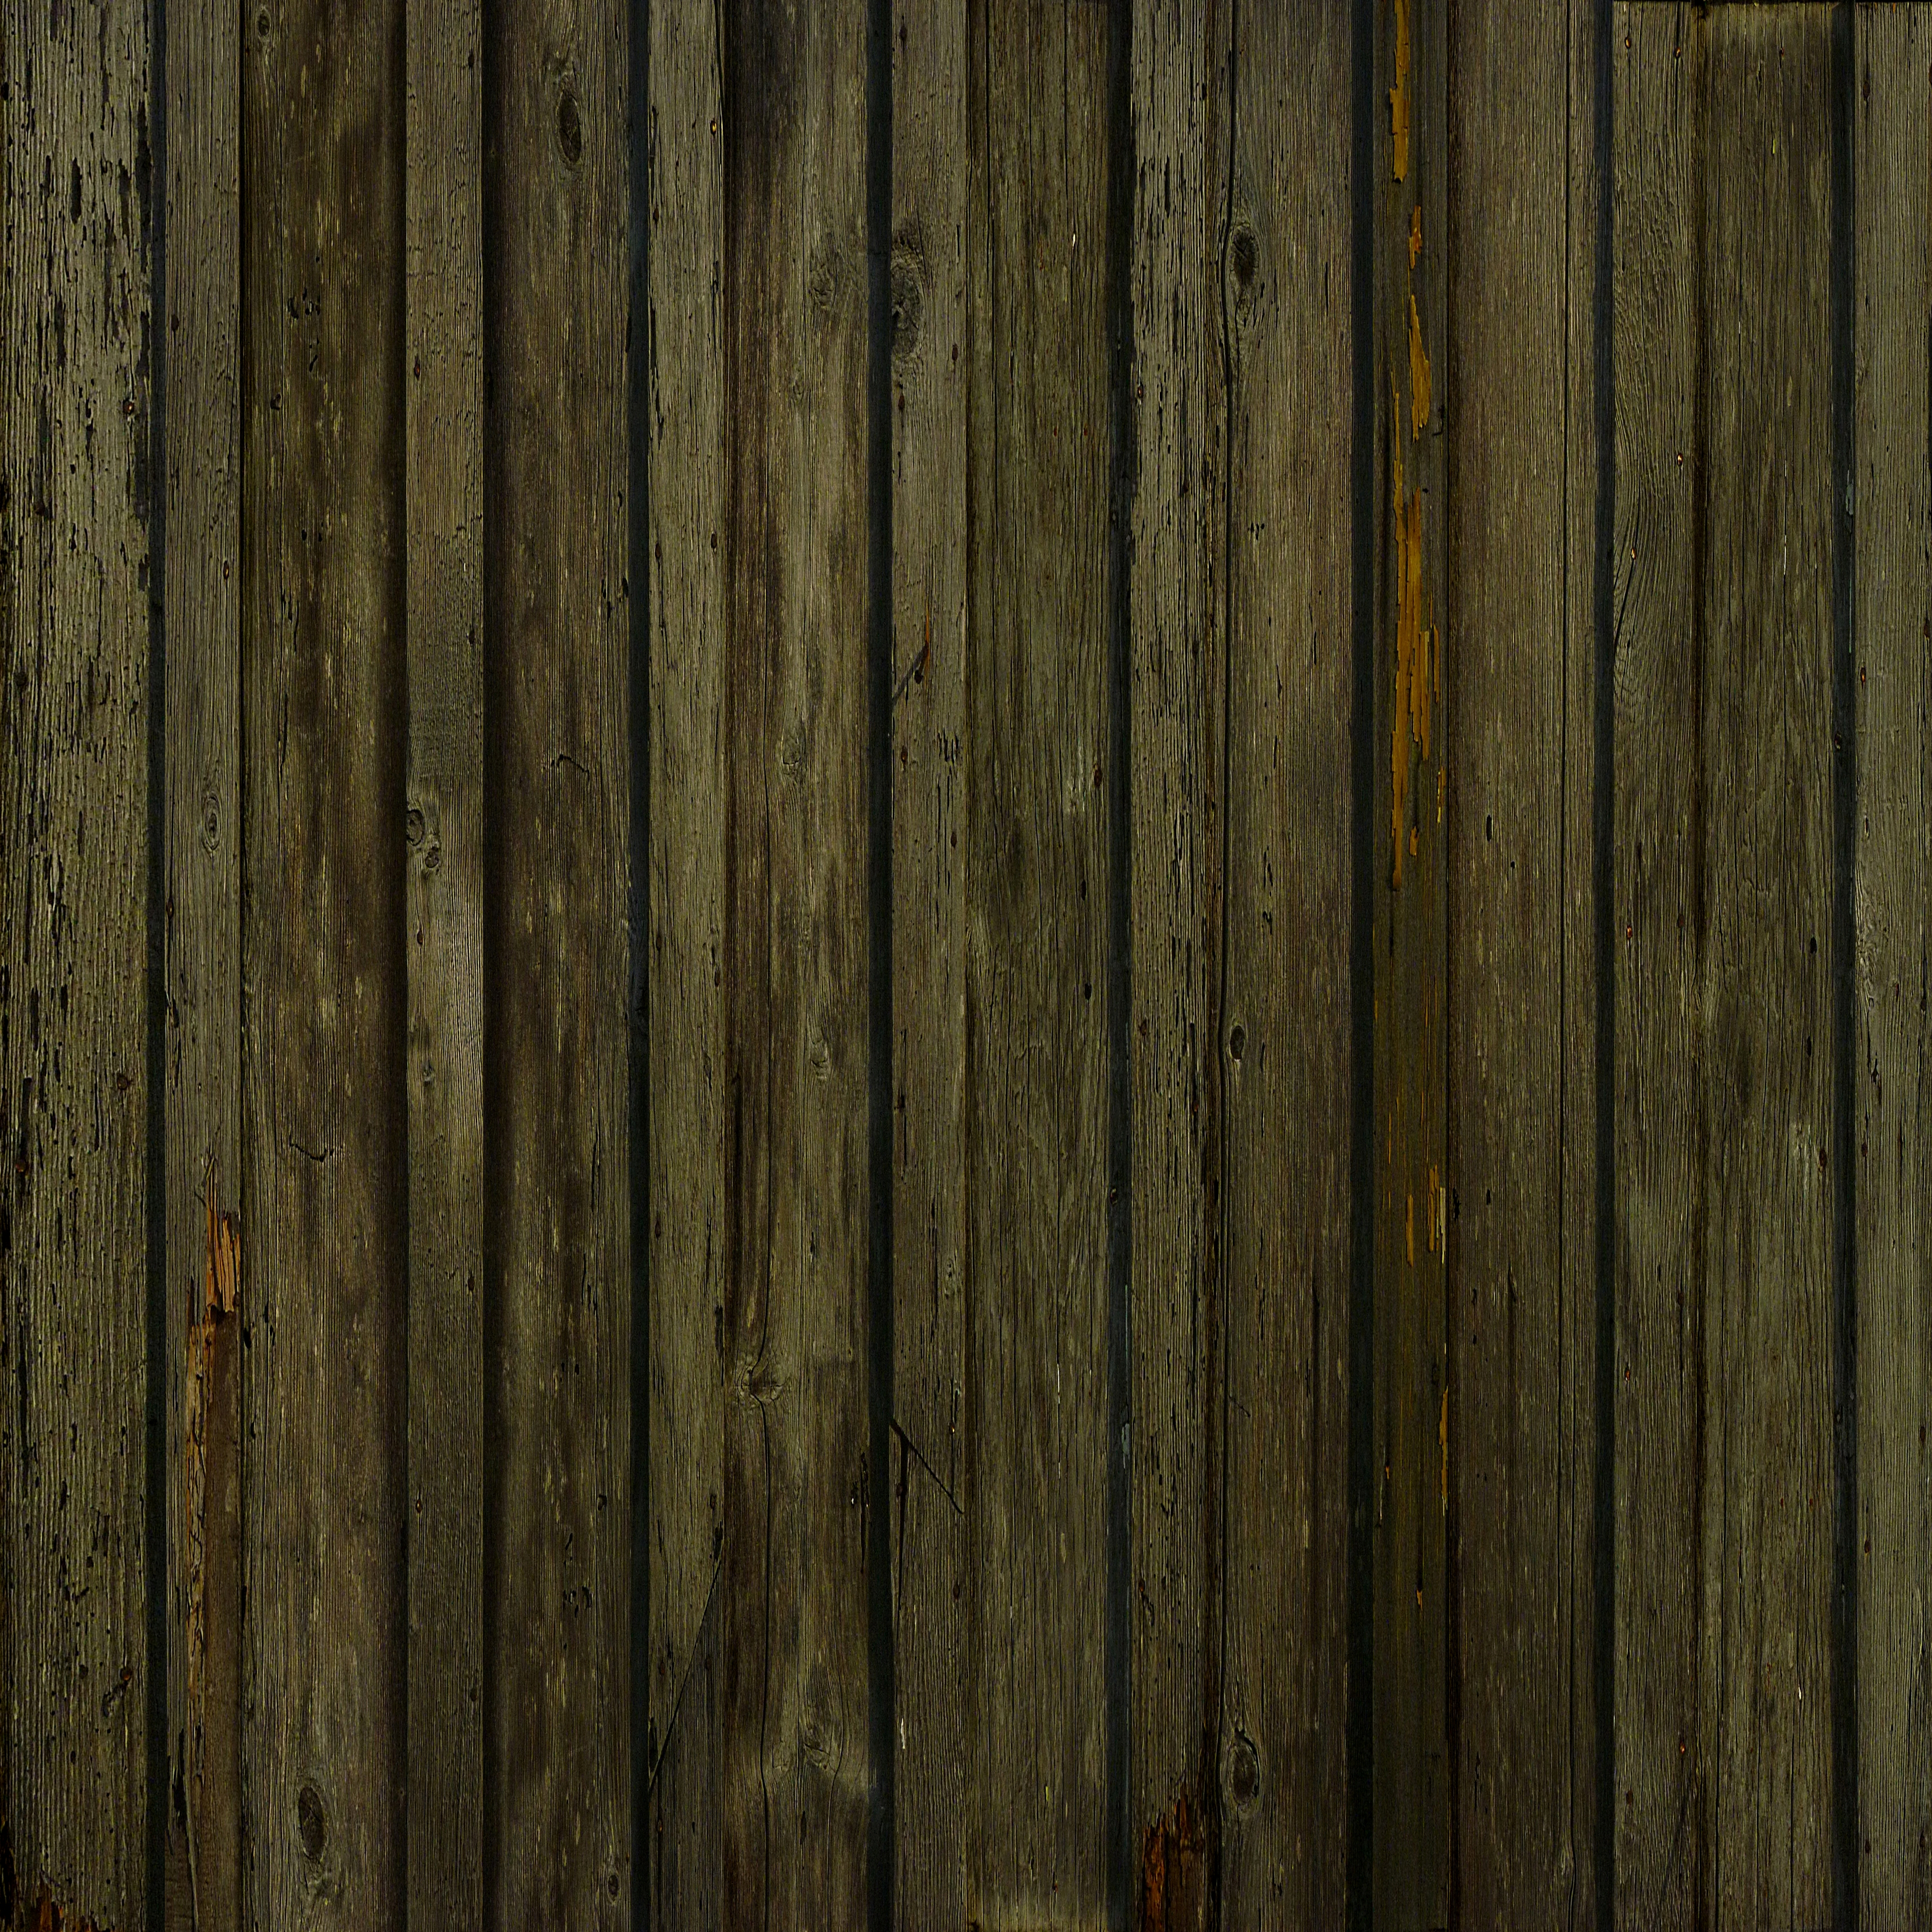 Texture weatheredwood 3400x3400 by wailwulf on deviantart - Exterior textured paint for wood pict ...